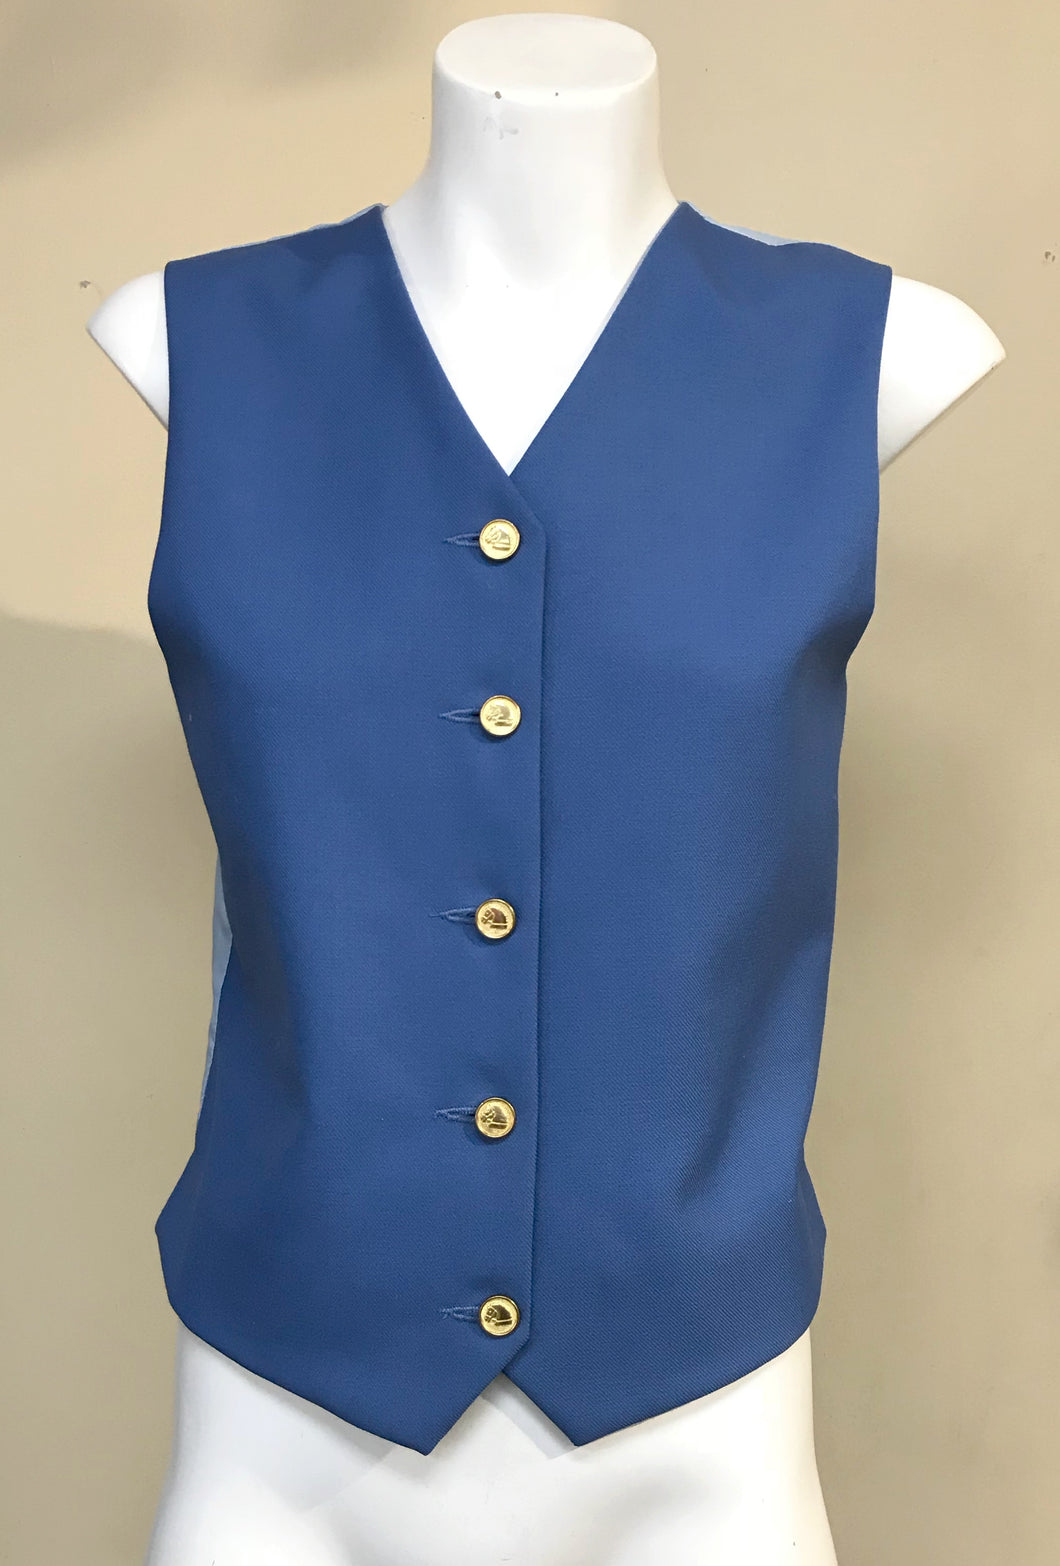 Windsor Riding Apparel Show Vest/Waistcoat Cornflower Blue